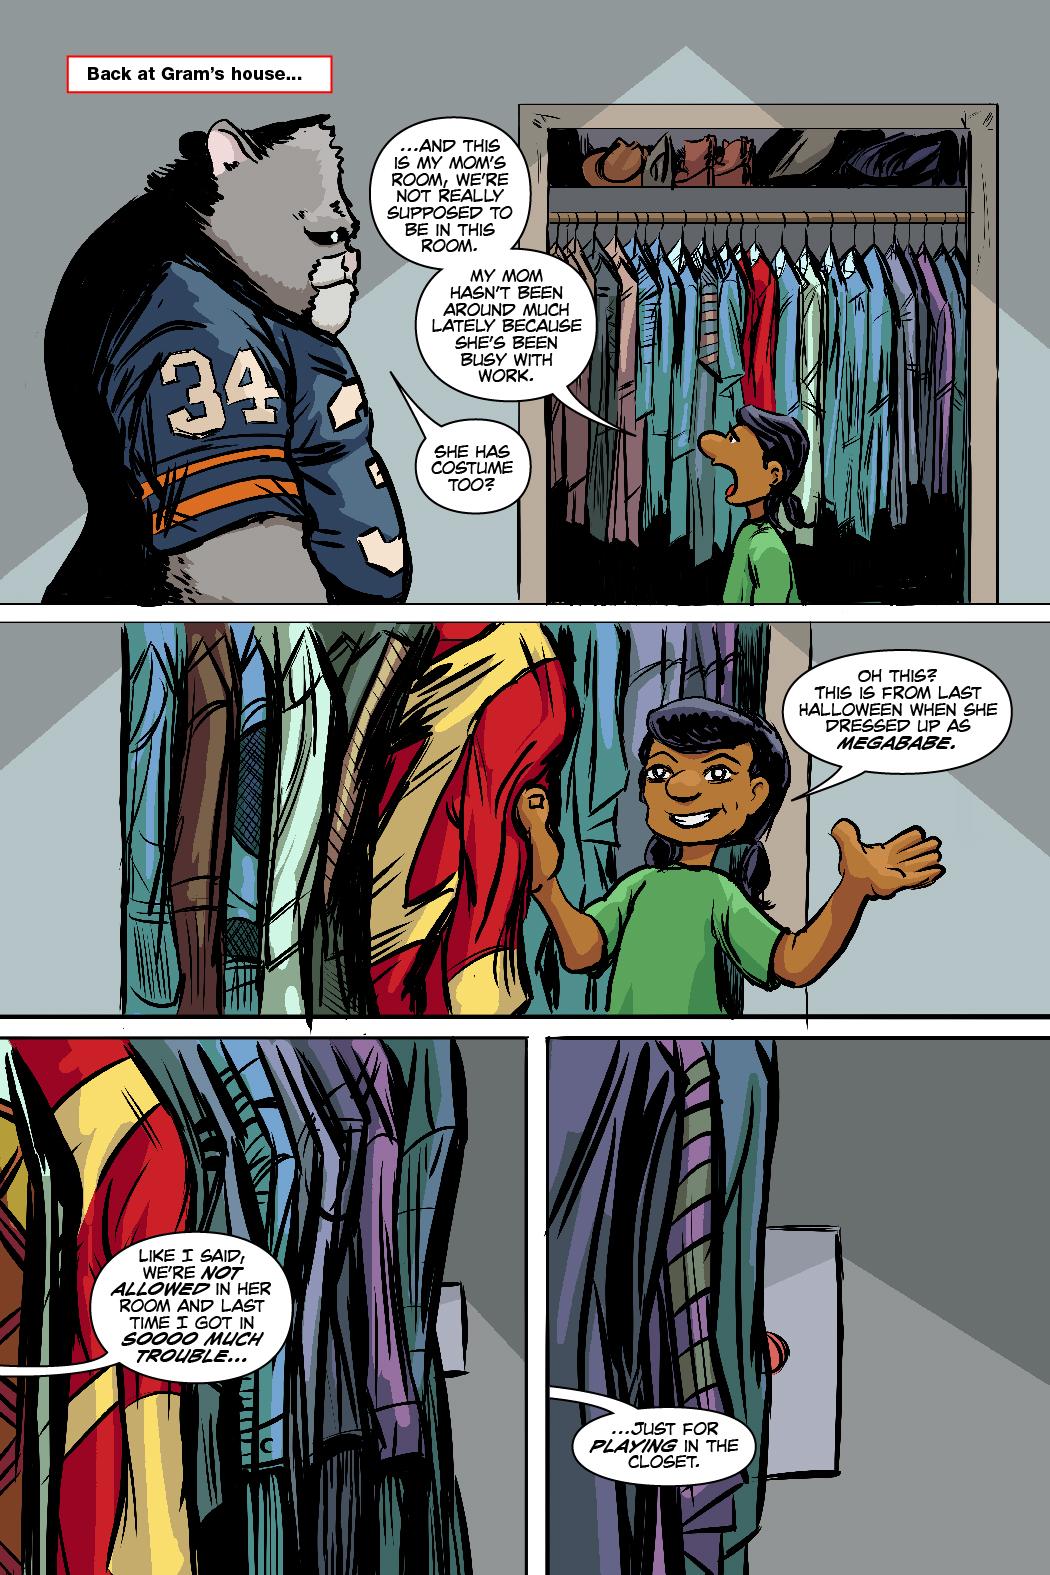 PAGE 77 Panel 1. Roosevelt standing in front of a closet with Shayna. 1 CAP: Back at Gram's House. SHAYNA: ...and this is my mom's room, we're not really supposed to be in this room, My mom hasn't been around much lately because she's been busy with work. ROOSEVELT: She has costume too? Panel 2. Shayna pulls on a clothing from the closet. SHAYNA: Oh this? This is from last Halloween when she dressed up as MegaBabe. Panel 3. The closet zoomed in. SHAYNA: Like I said, we're not allowed in her room and last time I got in soooo much trouble... Panel 4. We see a red button on the side of the closet. SHAYNA: ...just for playing in the closet.